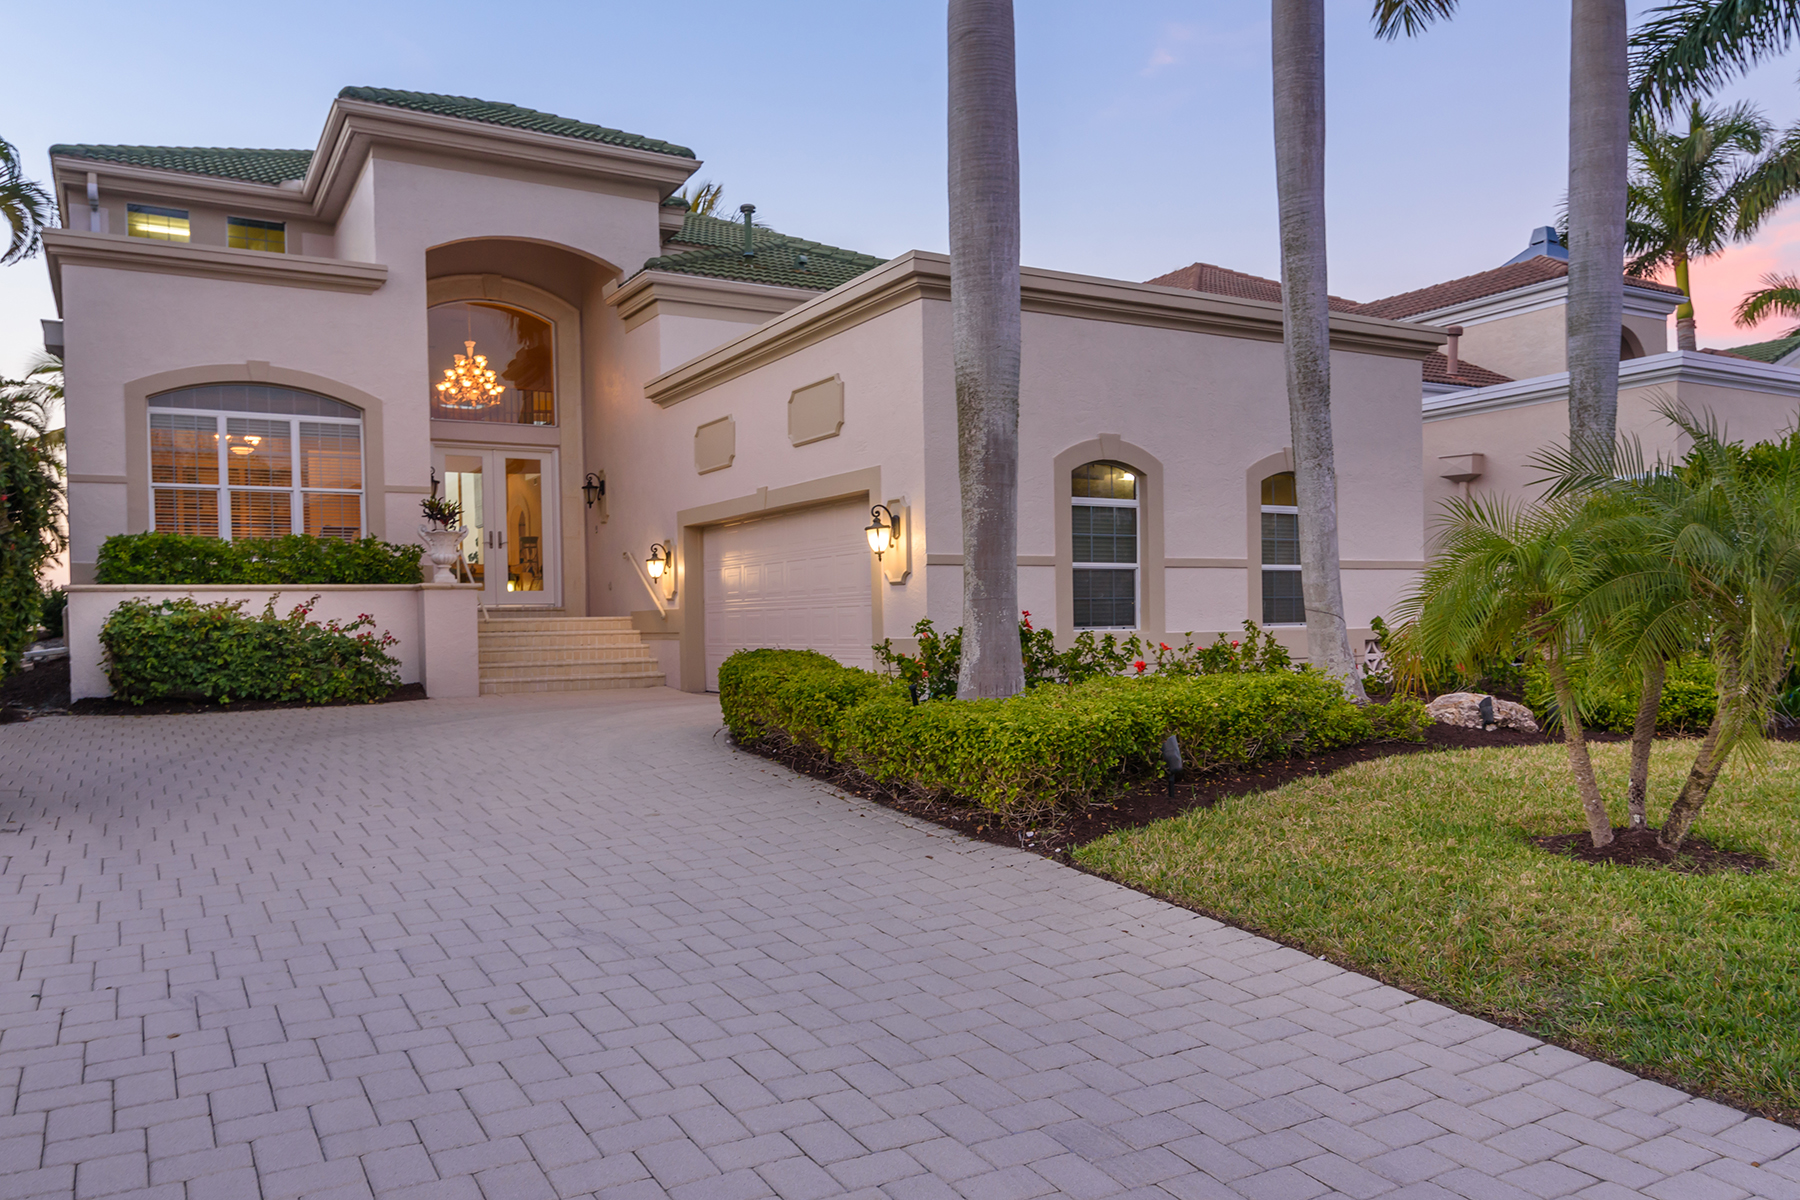 Single Family Homes for Active at QUEENS HARBOUR 3612 Fair Oaks Pl Longboat Key, Florida 34228 United States